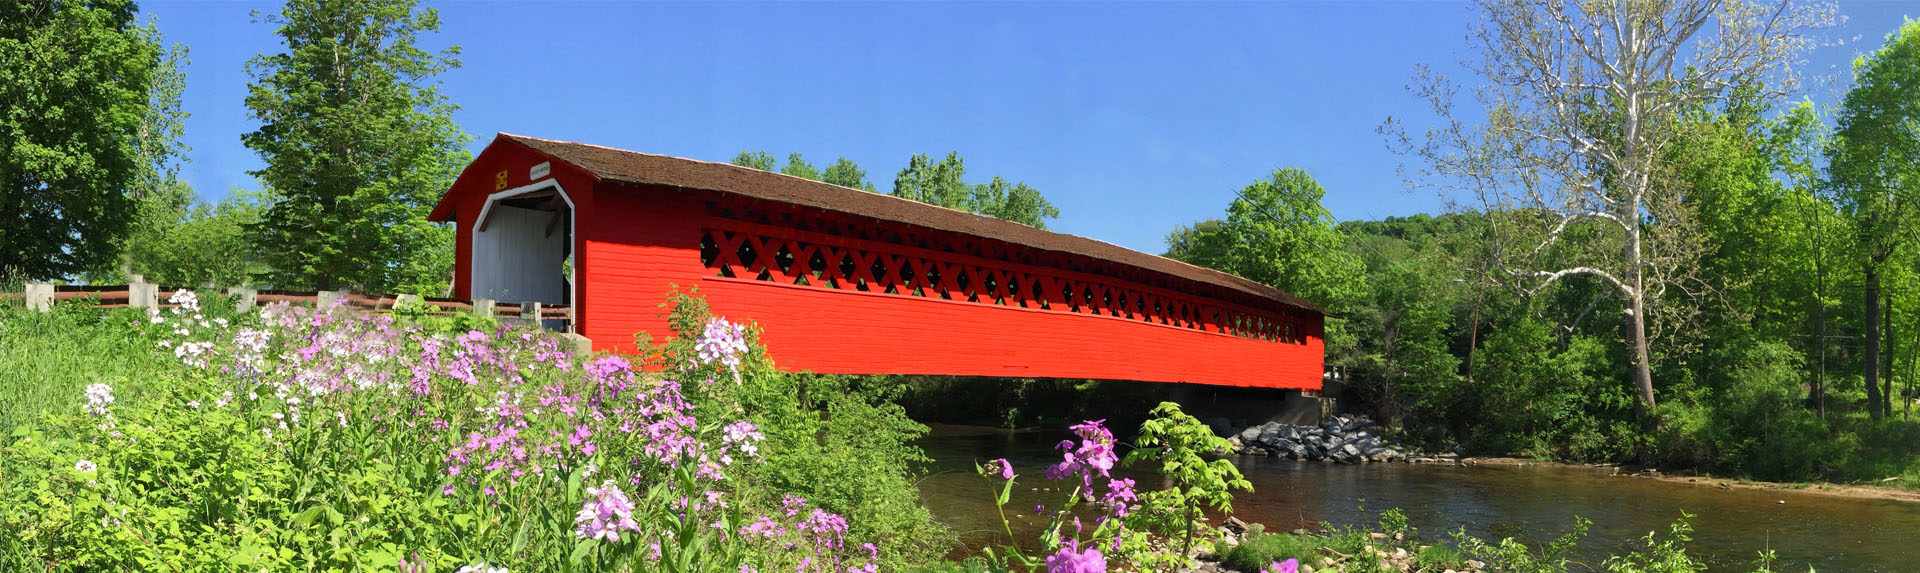 Bennington Covered Bridge